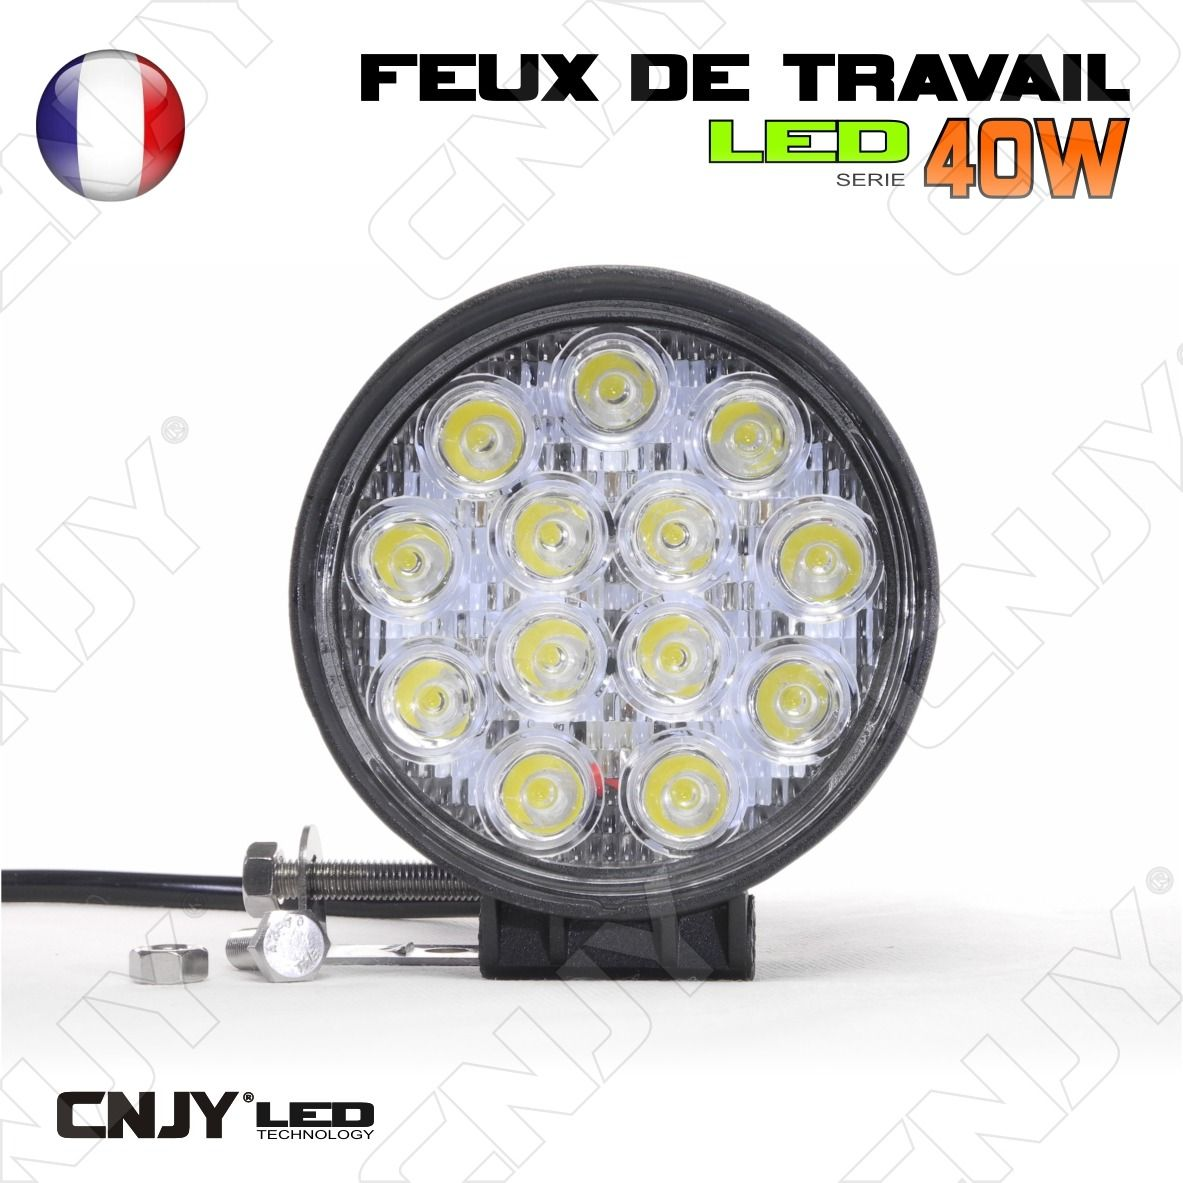 feux de travail cnjy led 40w rond working light ip67 camion bateau 4x4 12 24v 34 50 chez. Black Bedroom Furniture Sets. Home Design Ideas